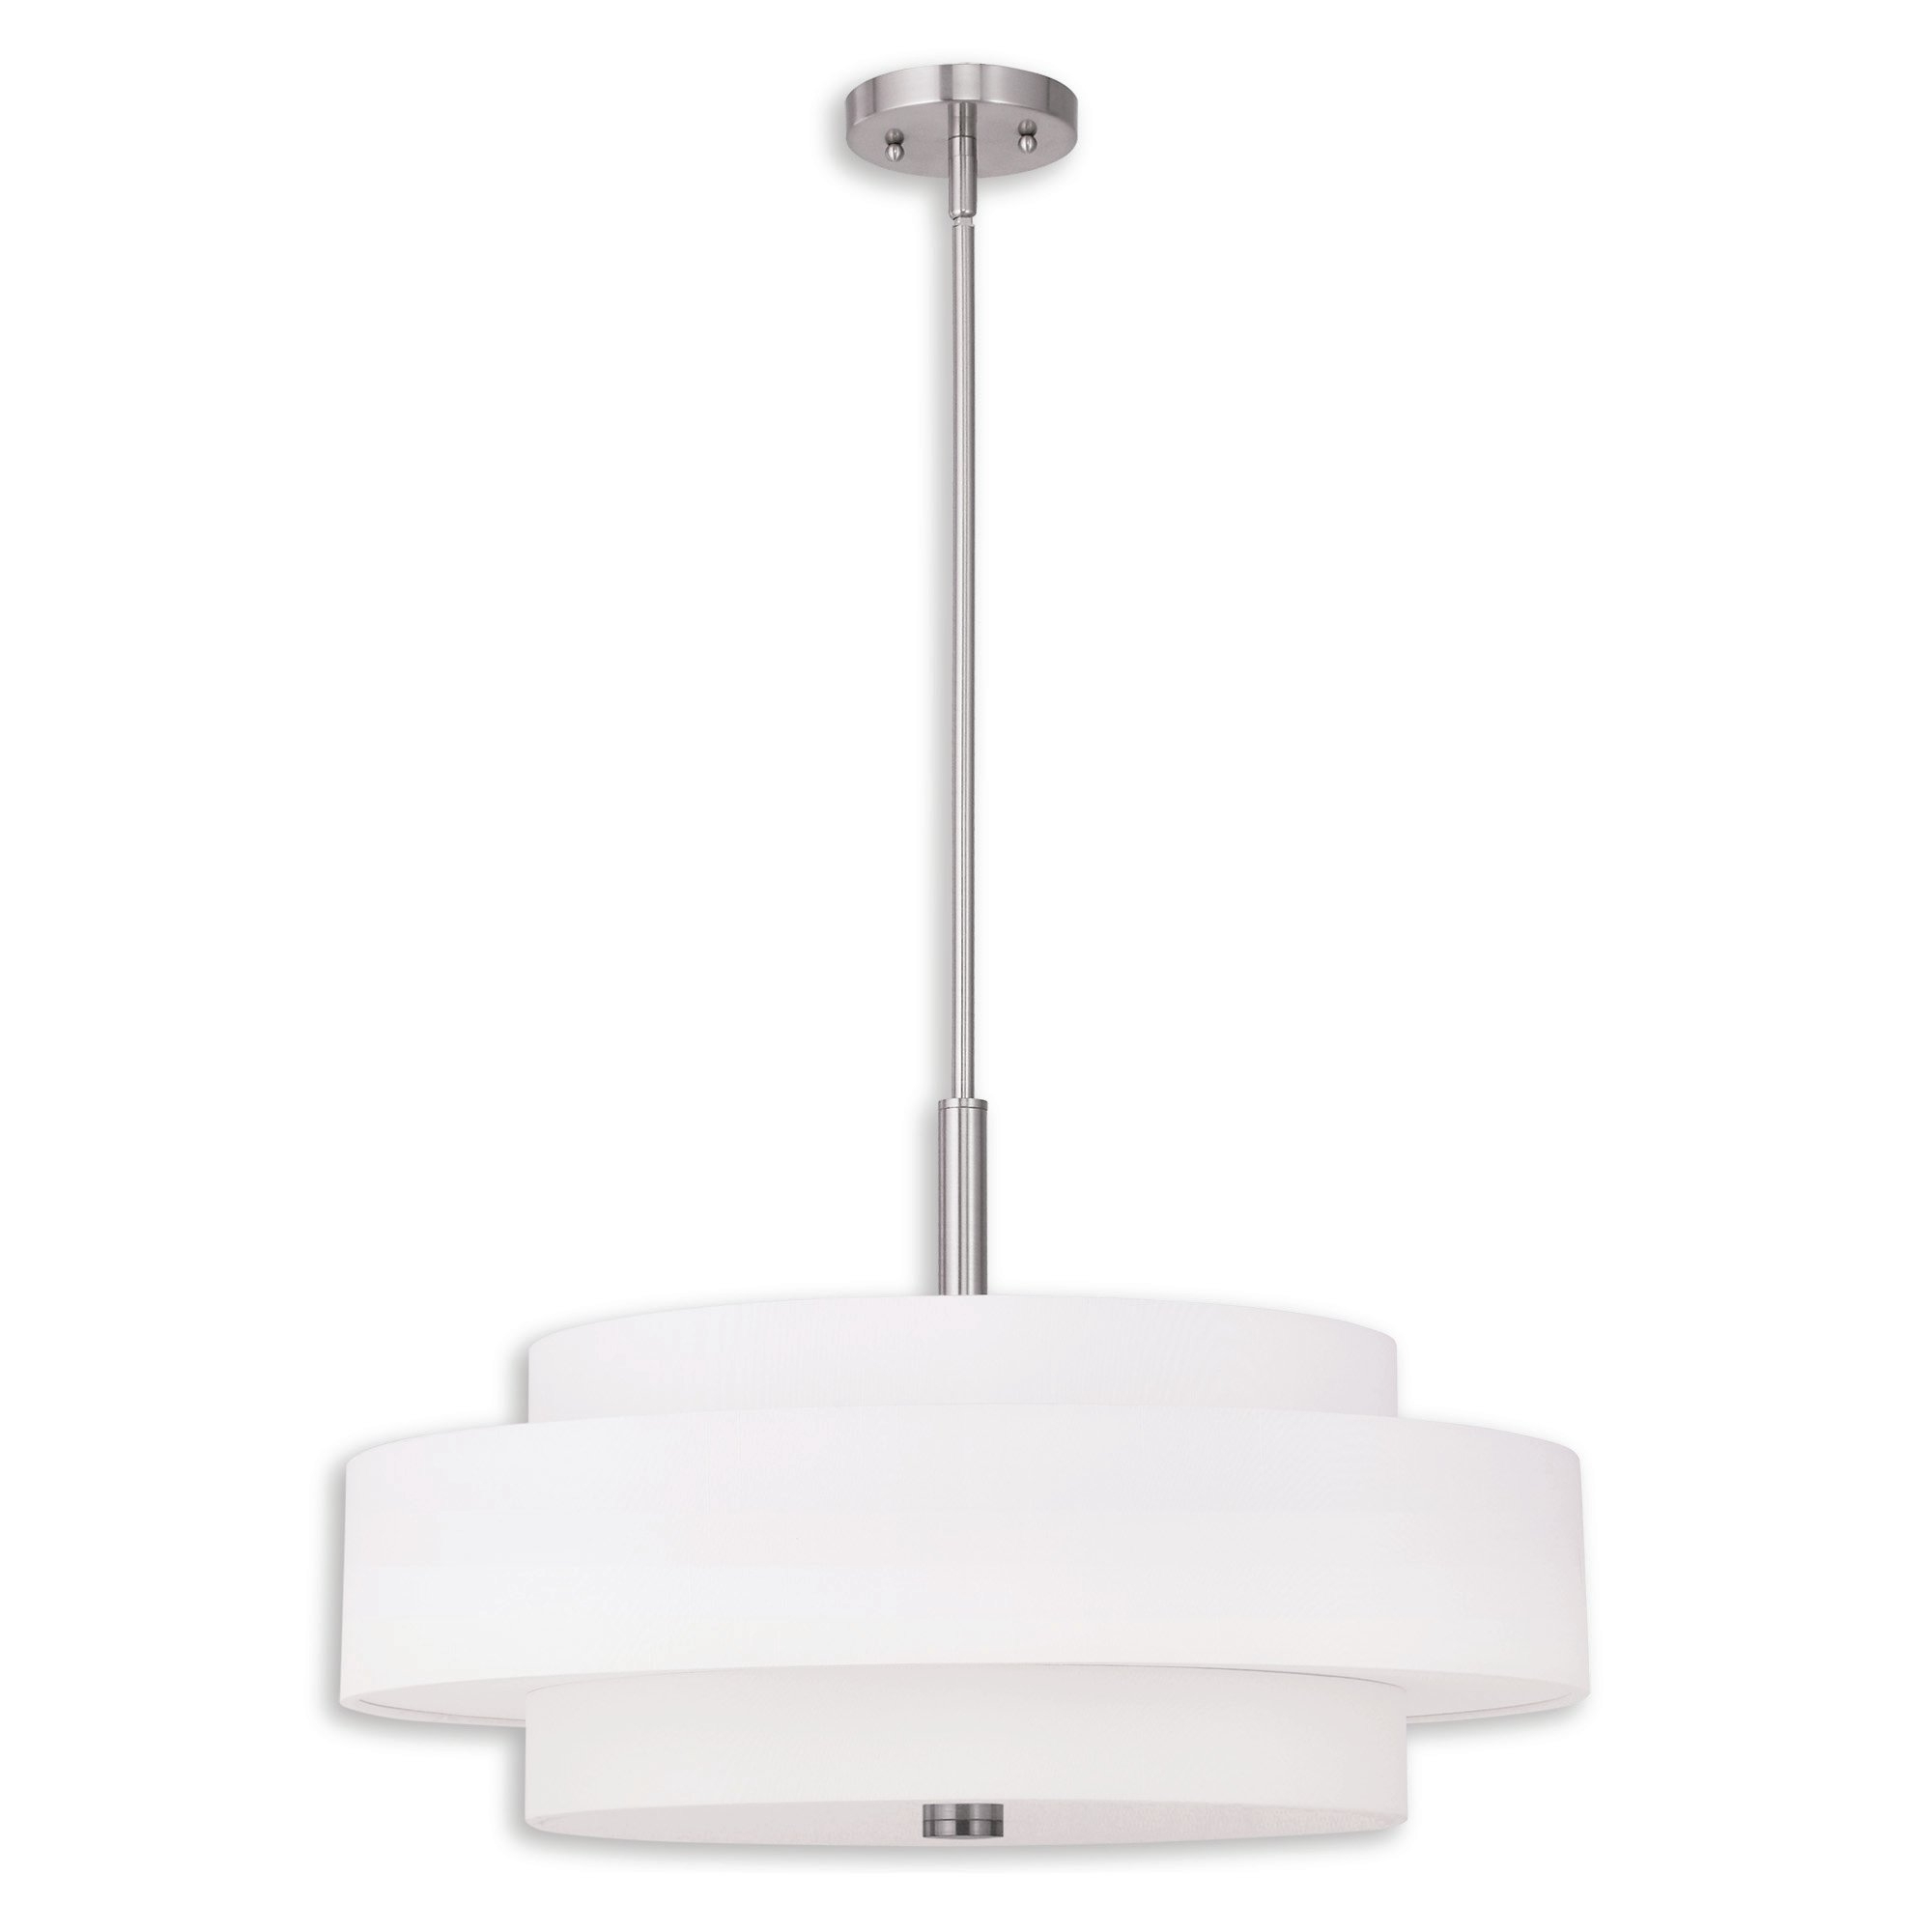 Breithaup 7 Light Drum Chandeliers Throughout Most Popular Alina 5 Light Drum Chandelier (View 7 of 20)